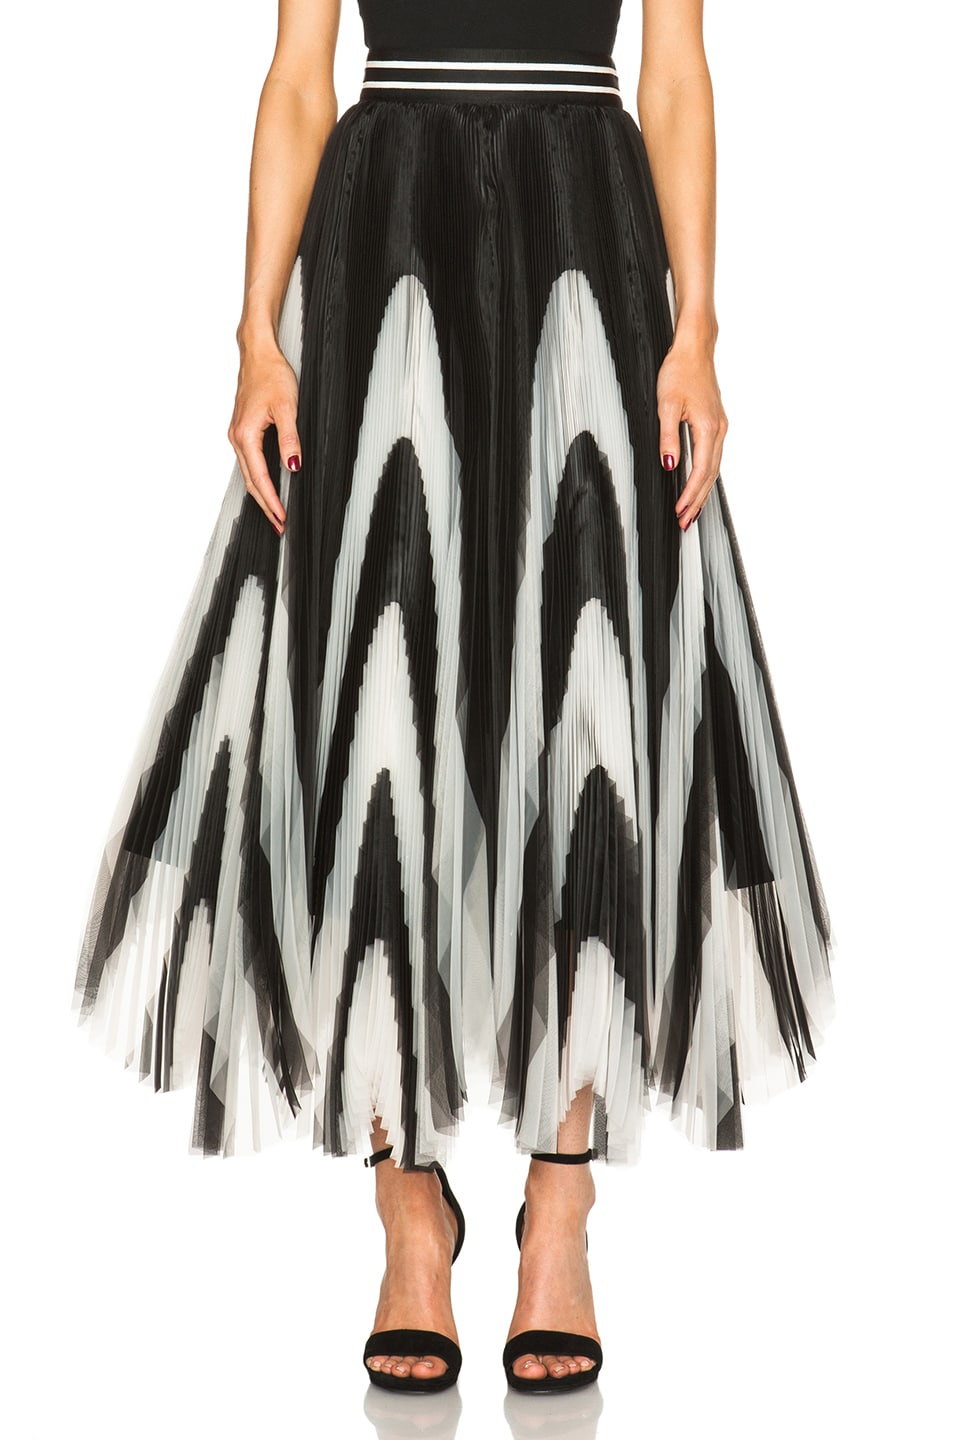 Black And White Pleated Skirt - Skirts